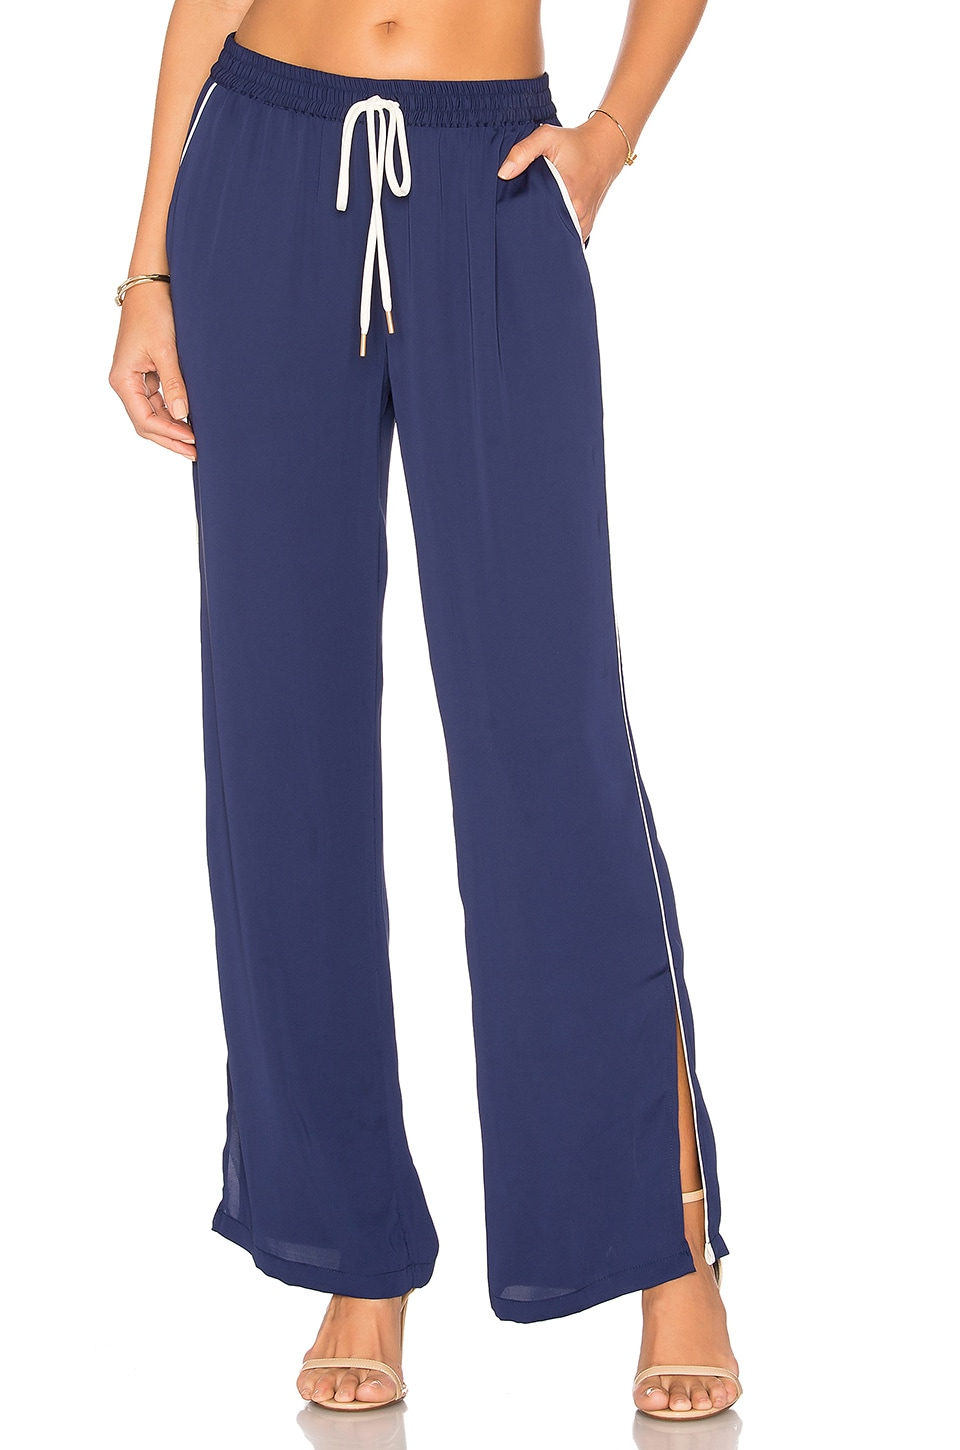 L'Academie The Lounge Pant in Navy & Ivory